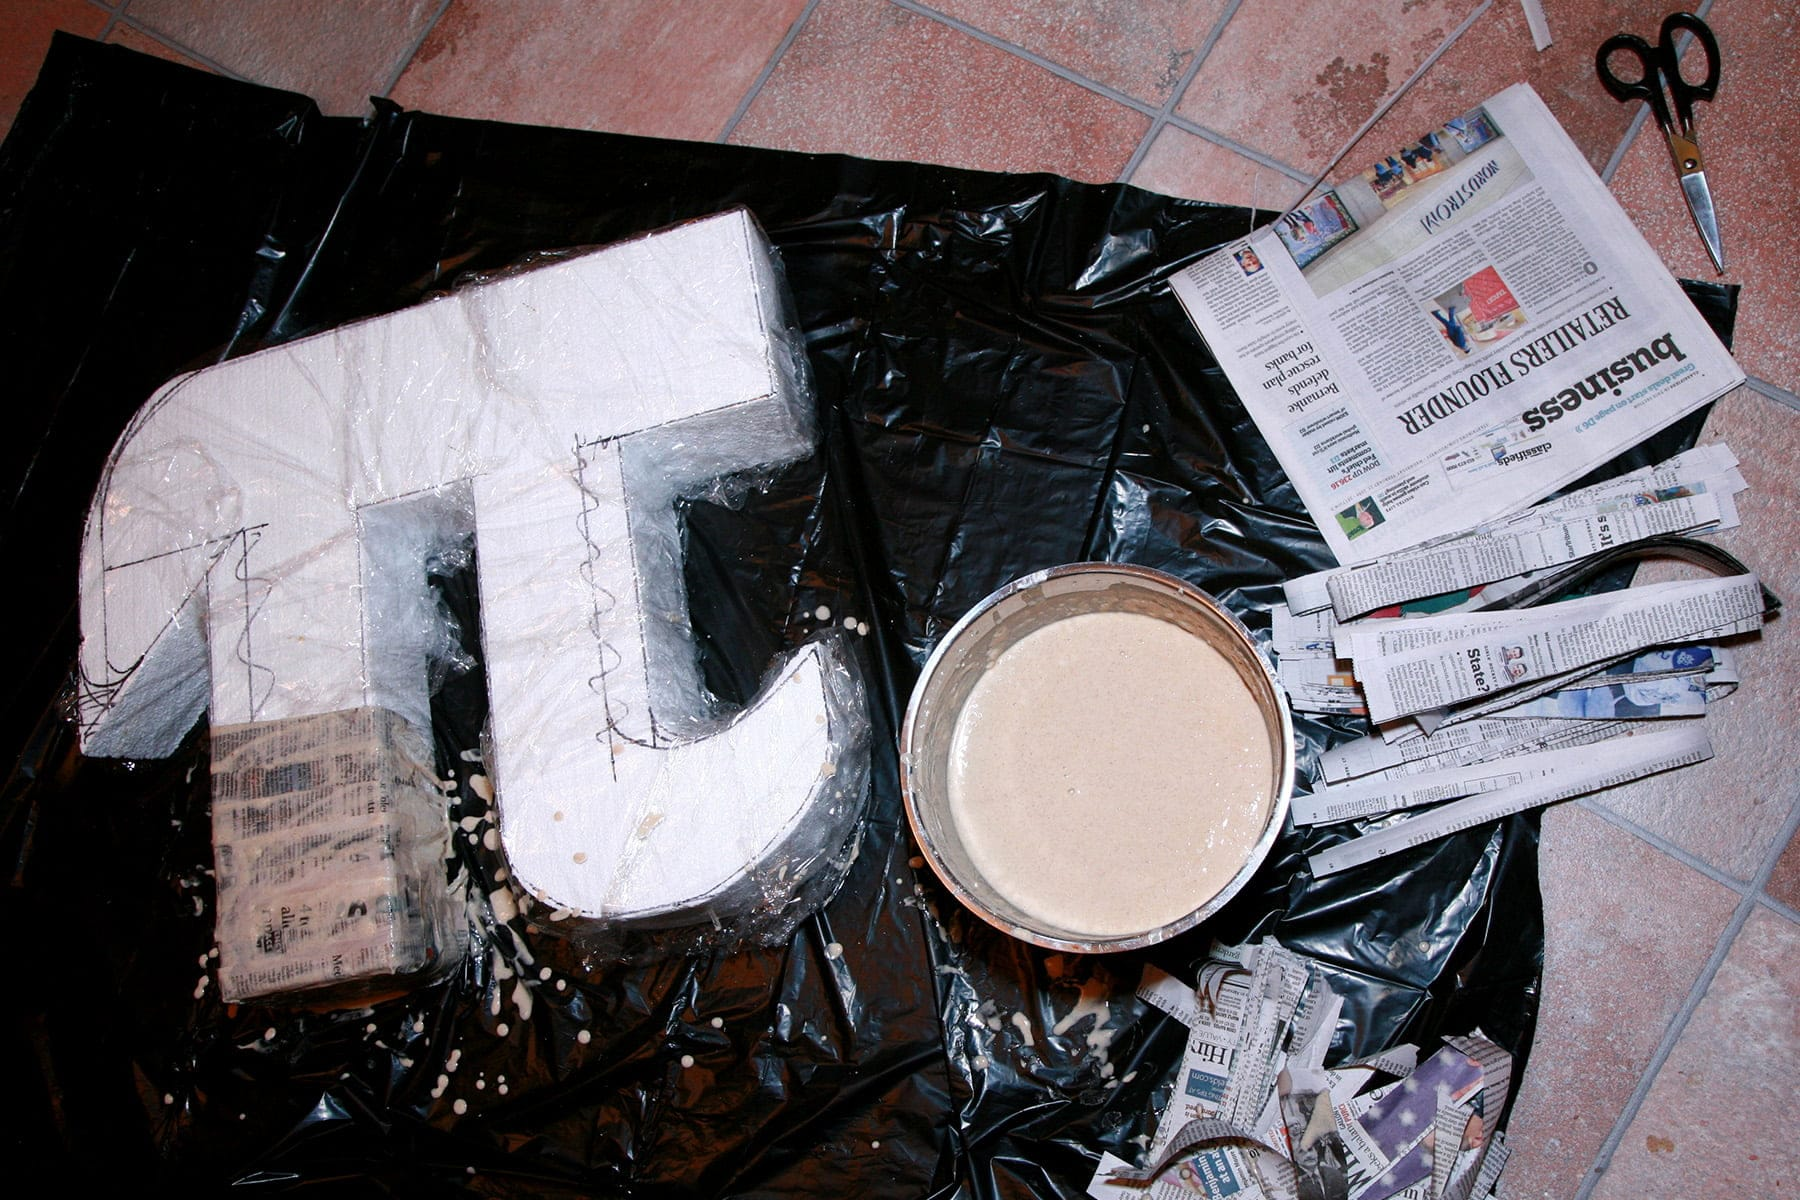 A large pi symbol shape - made of foam - is being covered in paper mache.